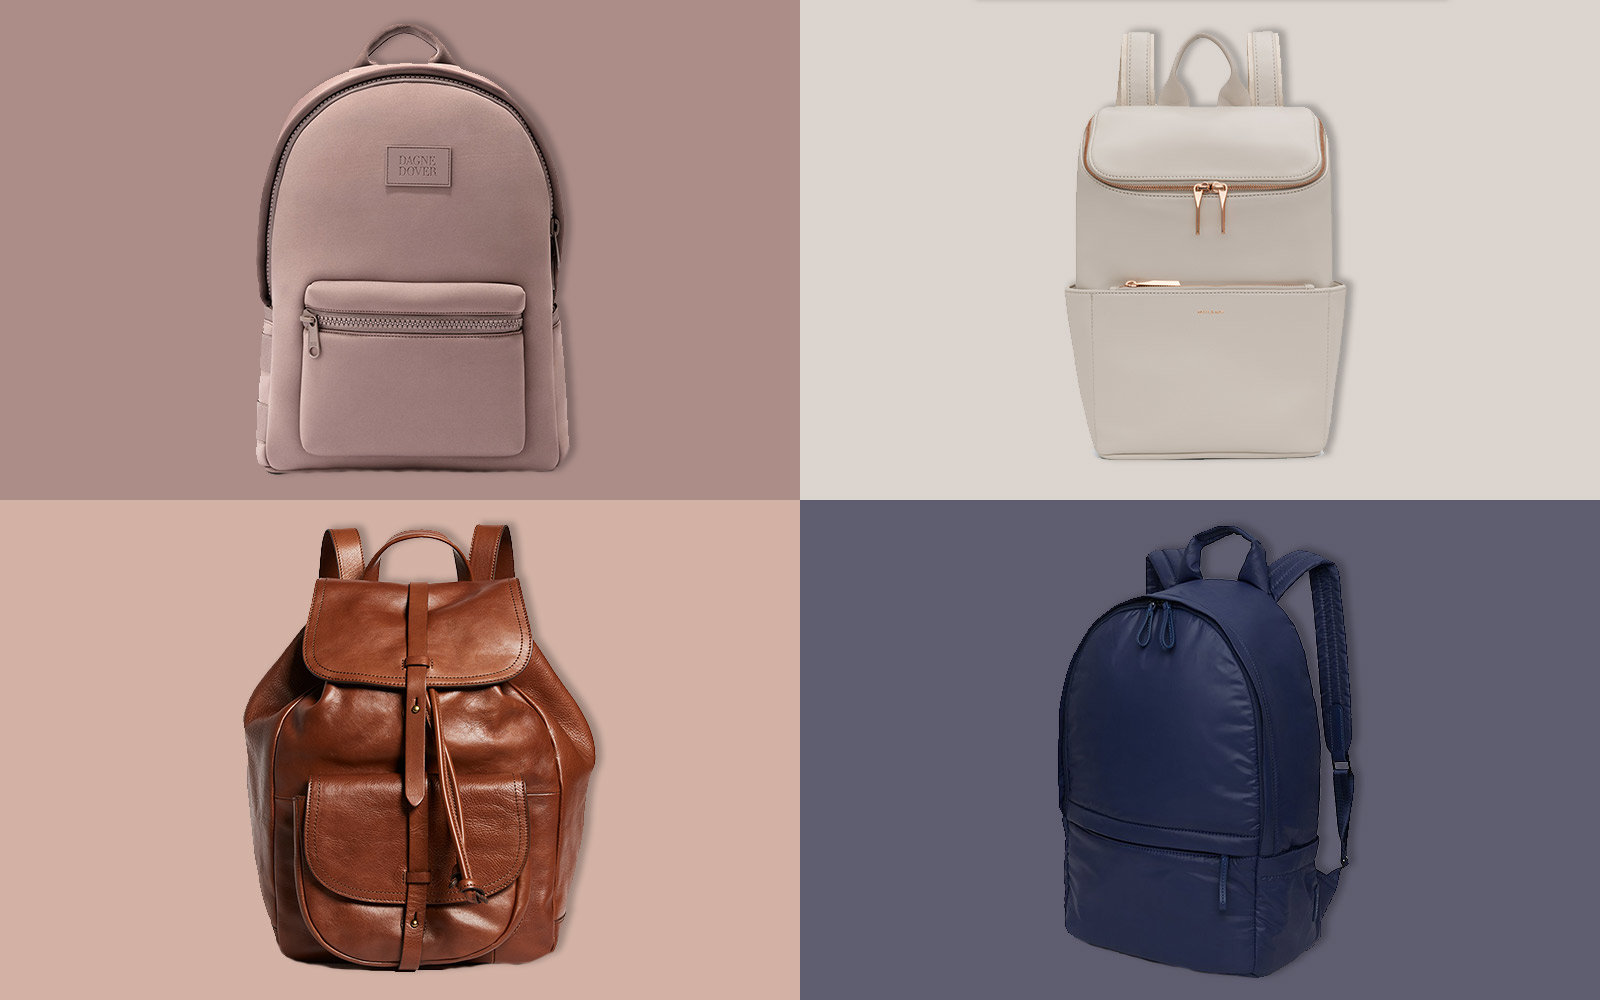 91e92a30e1 The Most Stylish Travel Backpacks For Women | Travel + Leisure